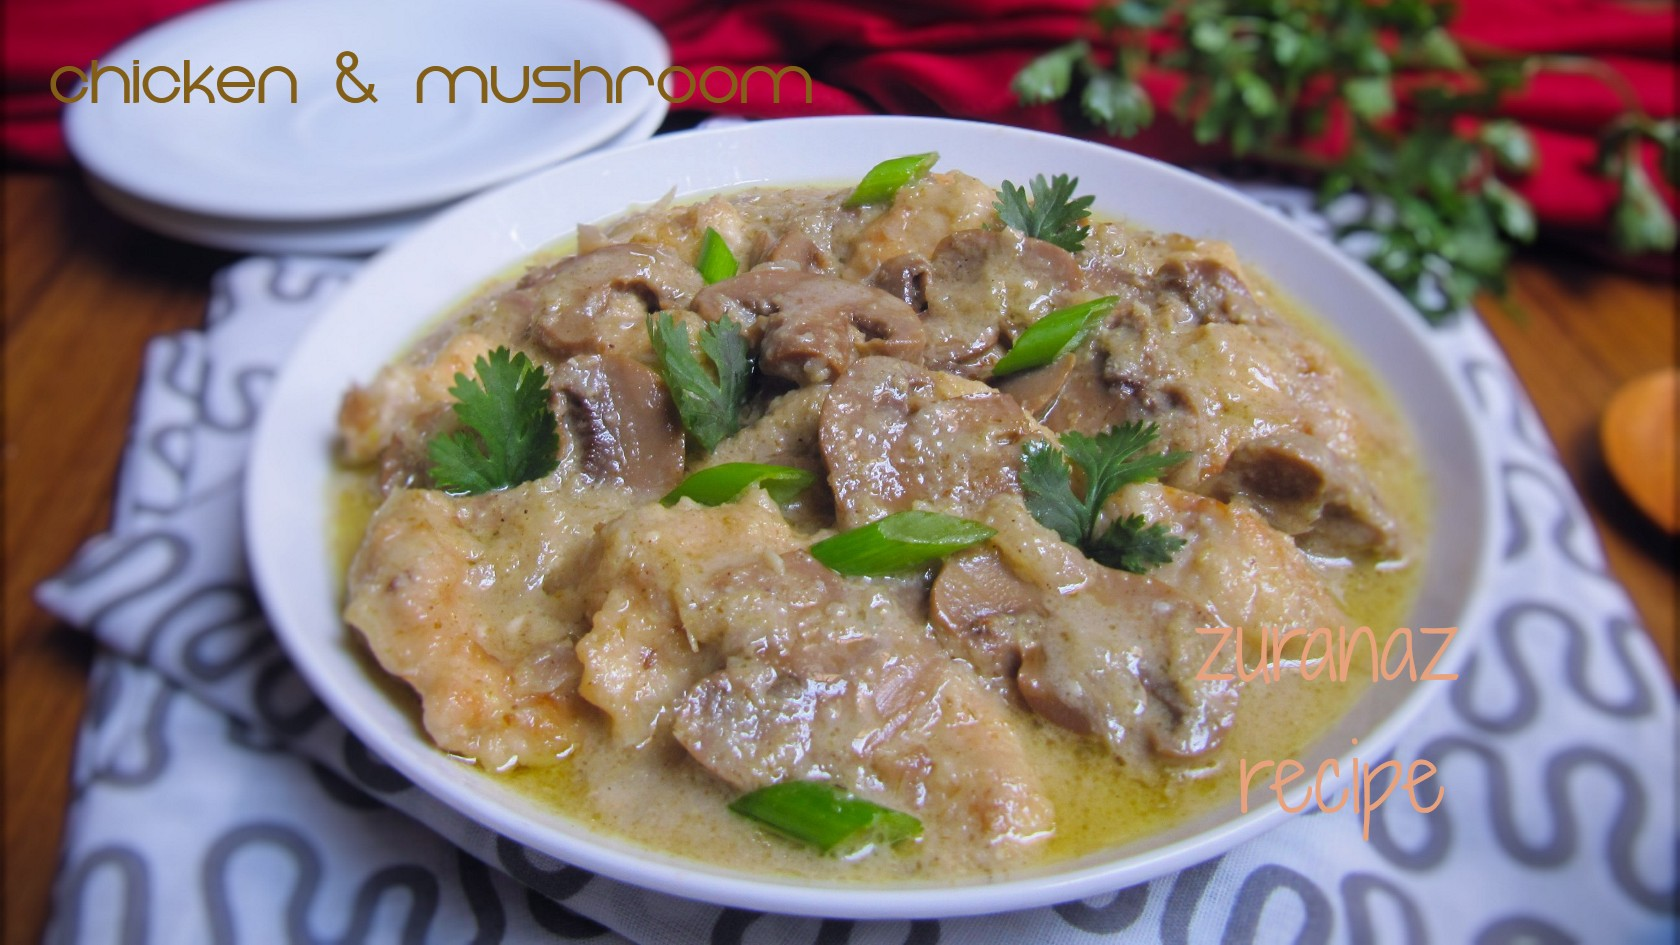 Chicken mushroom curry bangla bangladeshi bengali food recipes chicken mushroom curry forumfinder Choice Image